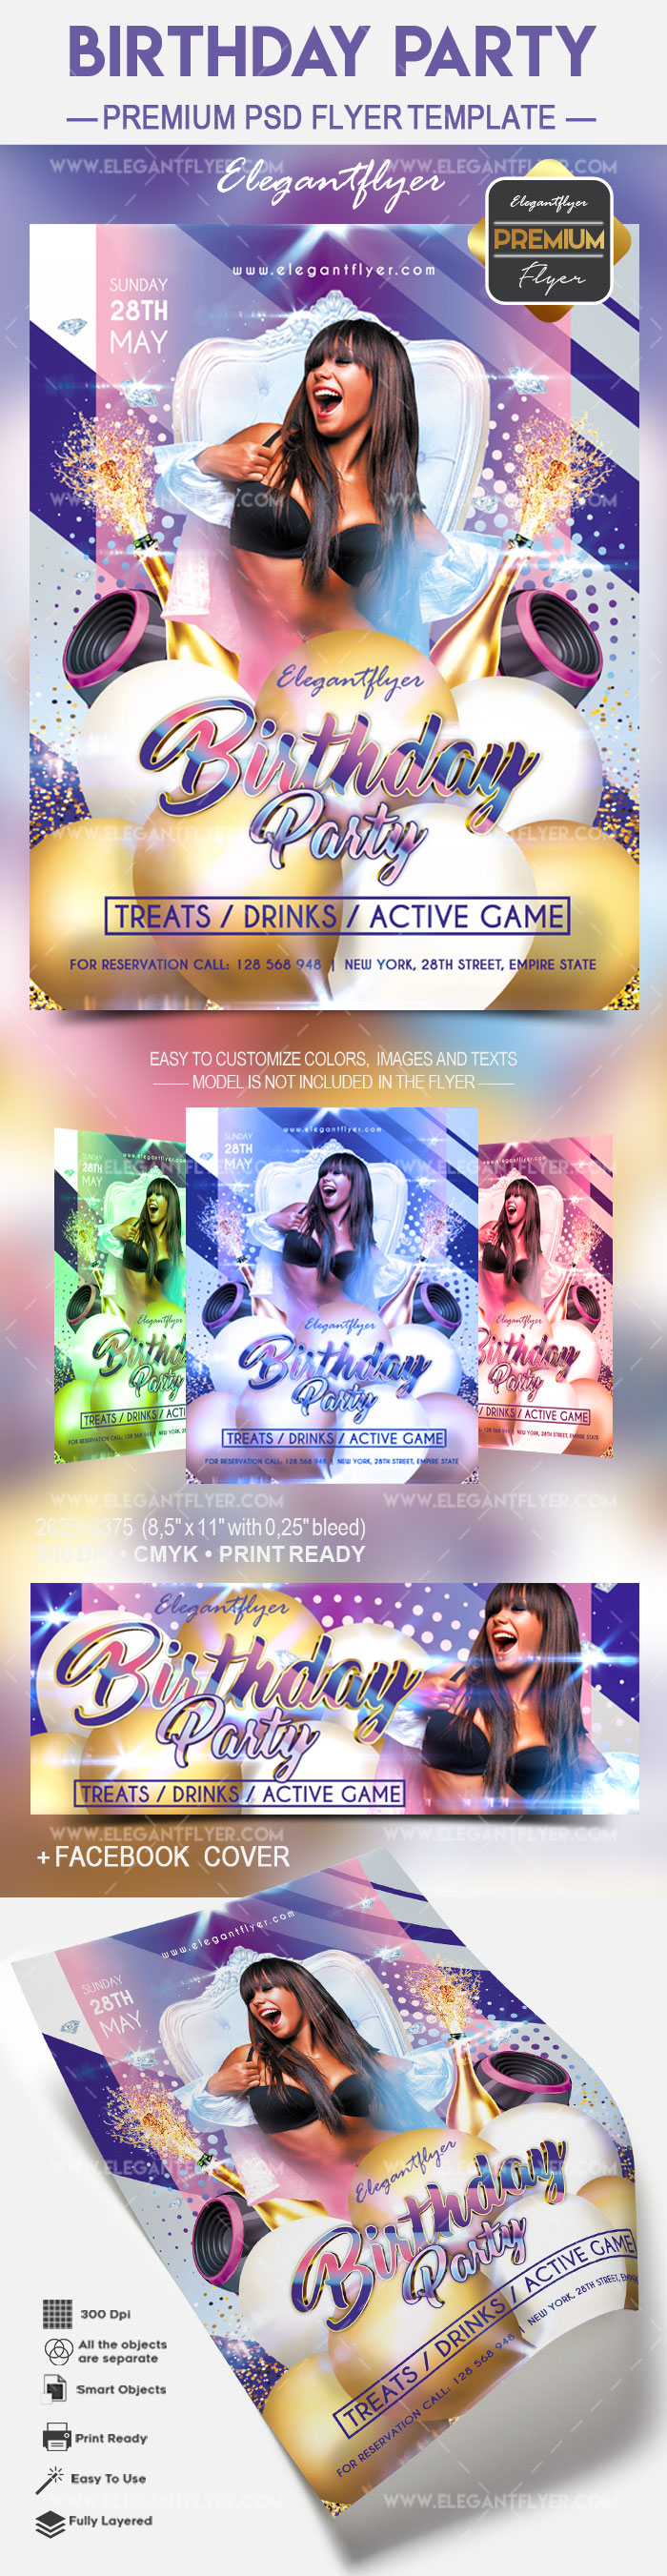 Birthday Flyer Template | Bigpreview Birthday Party 2017 flyer psd template facebook cover